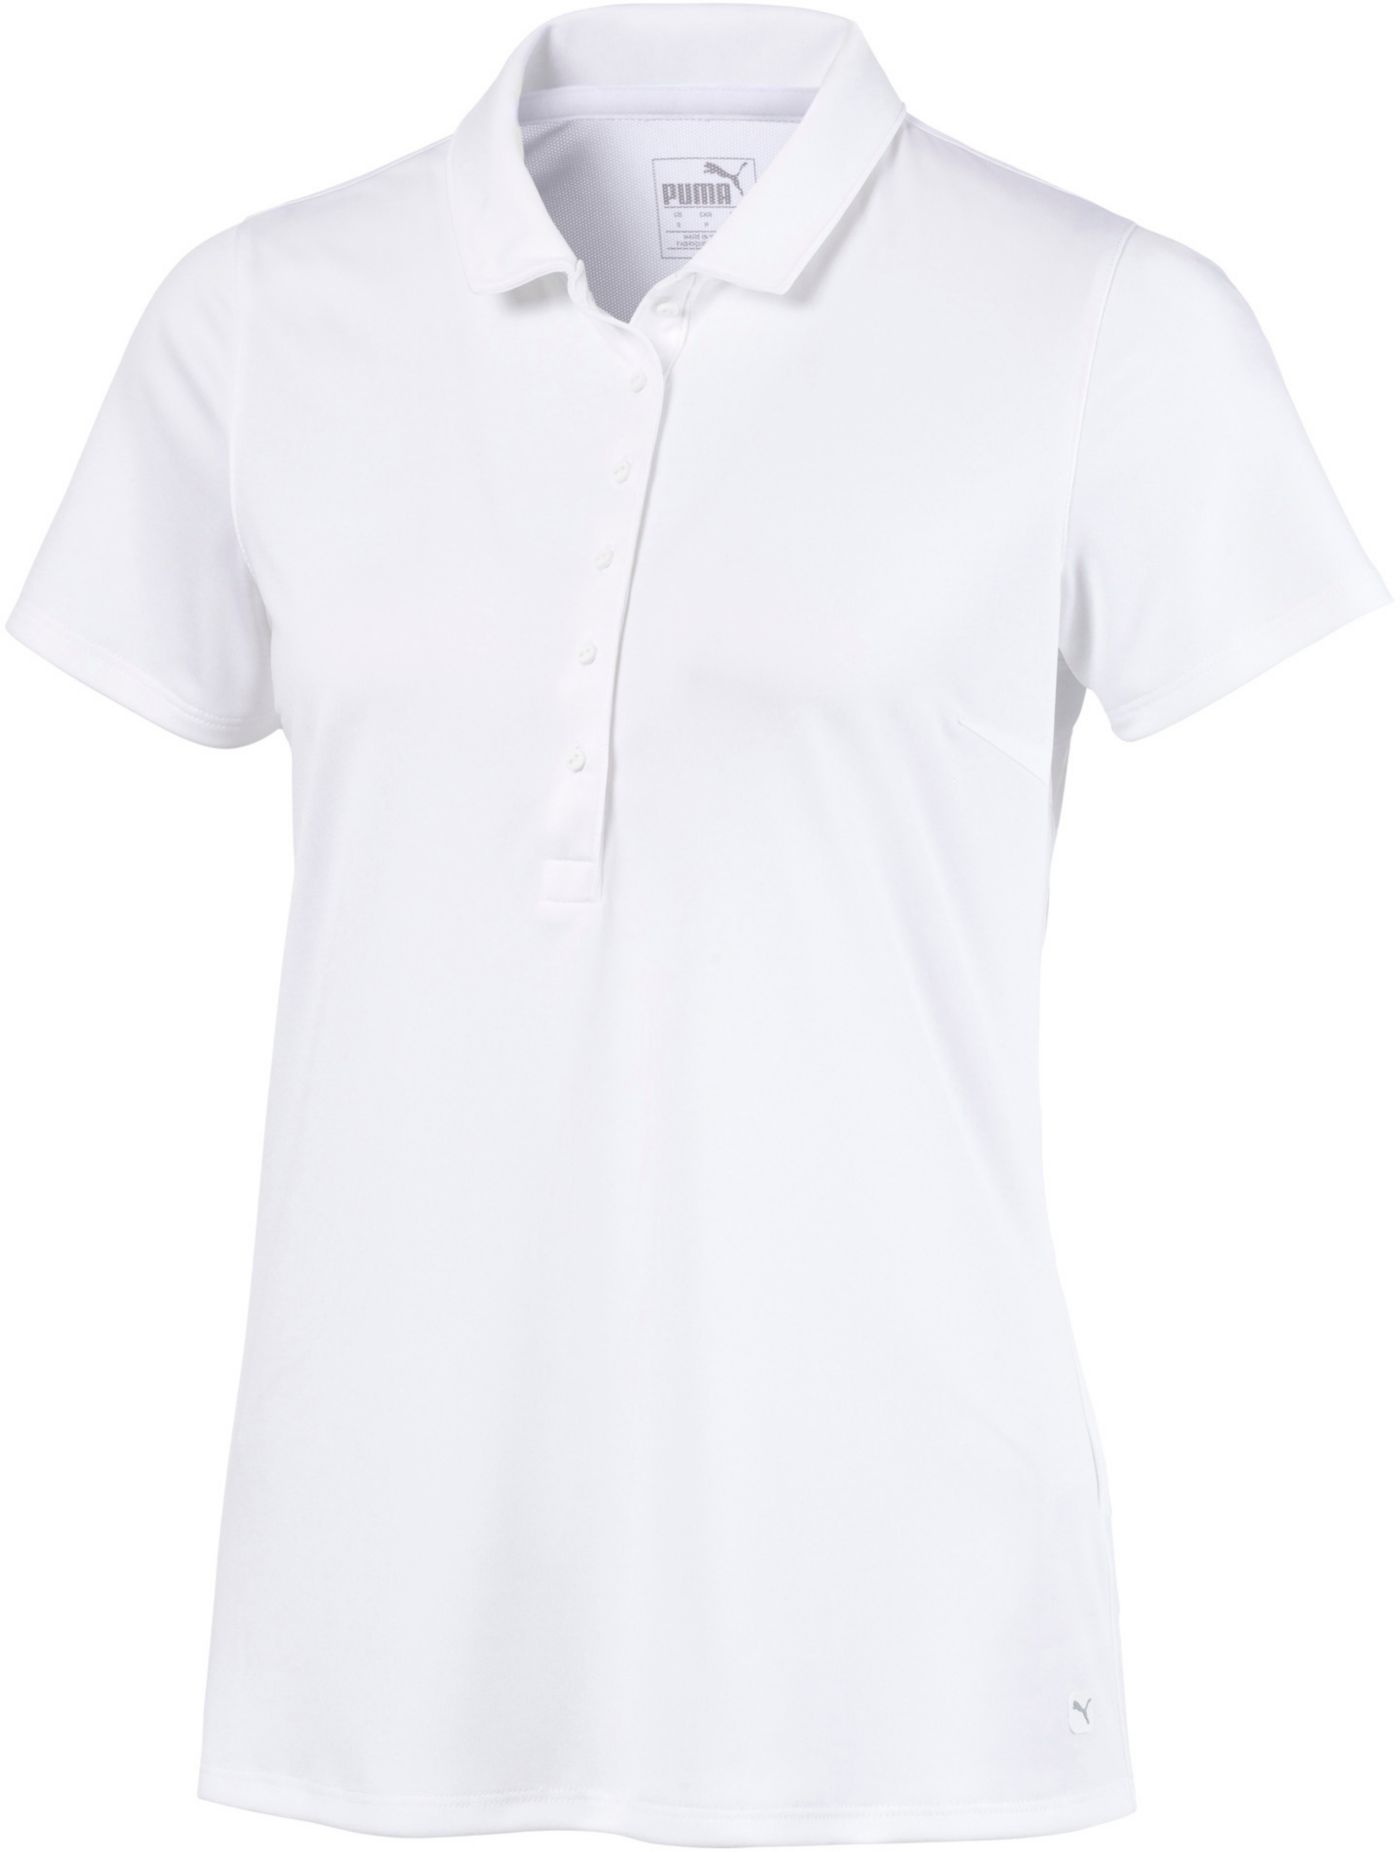 PUMA Women's Rotation Short Sleeve Polo